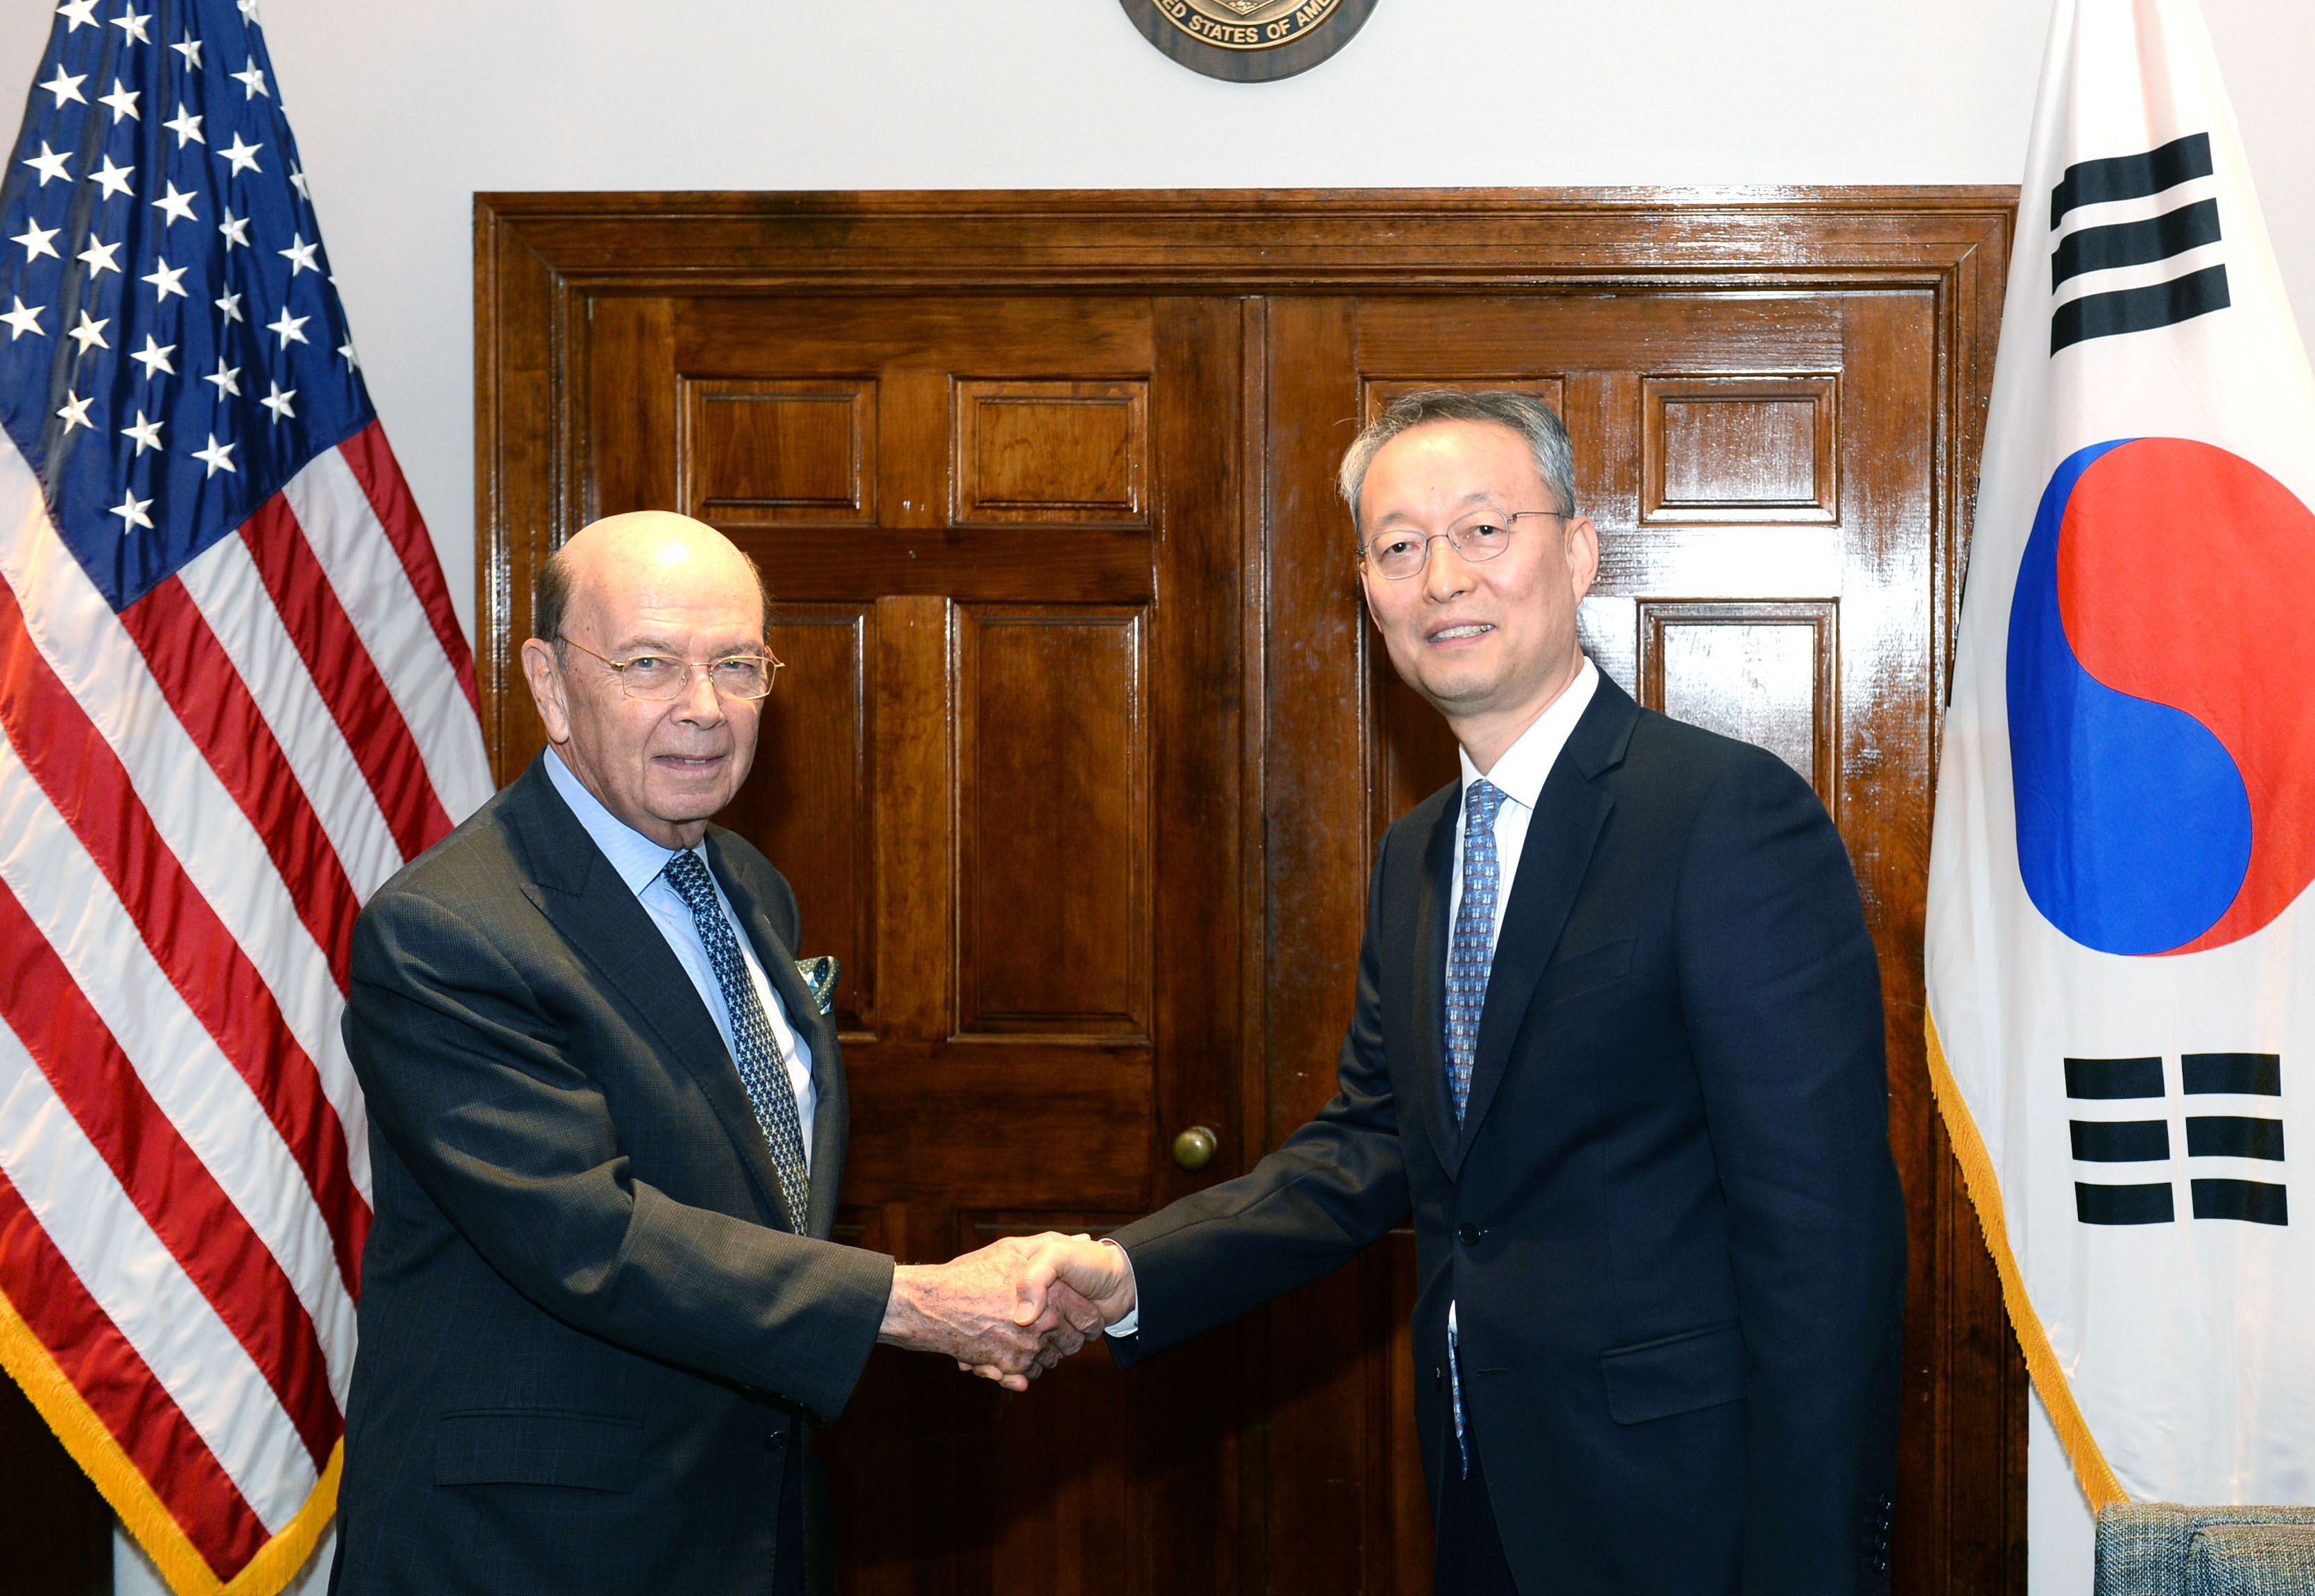 Minister Paik meets with US counterpart to enhance economic cooperation